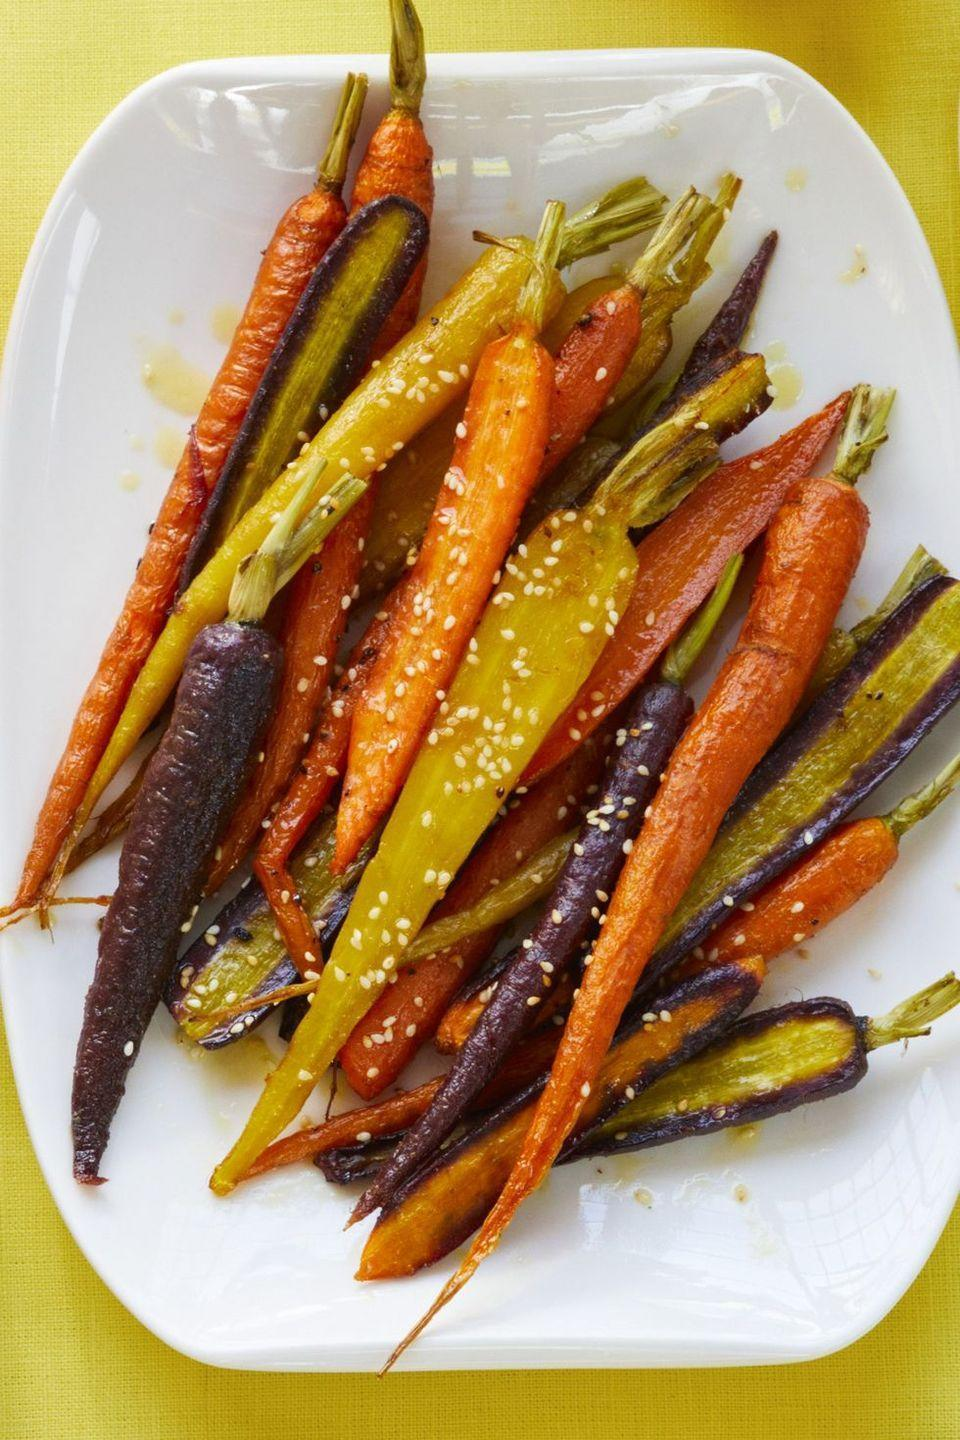 """<p>Roast an orange half along with the carrots before squeezing out it's juice for extra-sweet flavor.</p><p><em><a href=""""https://www.womansday.com/food-recipes/food-drinks/a19121978/roasted-carrots-with-citrus-vinaigrette-recipe/"""" rel=""""nofollow noopener"""" target=""""_blank"""" data-ylk=""""slk:Get the recipe from Woman's Day »"""" class=""""link rapid-noclick-resp"""">Get the recipe from Woman's Day »</a></em></p>"""